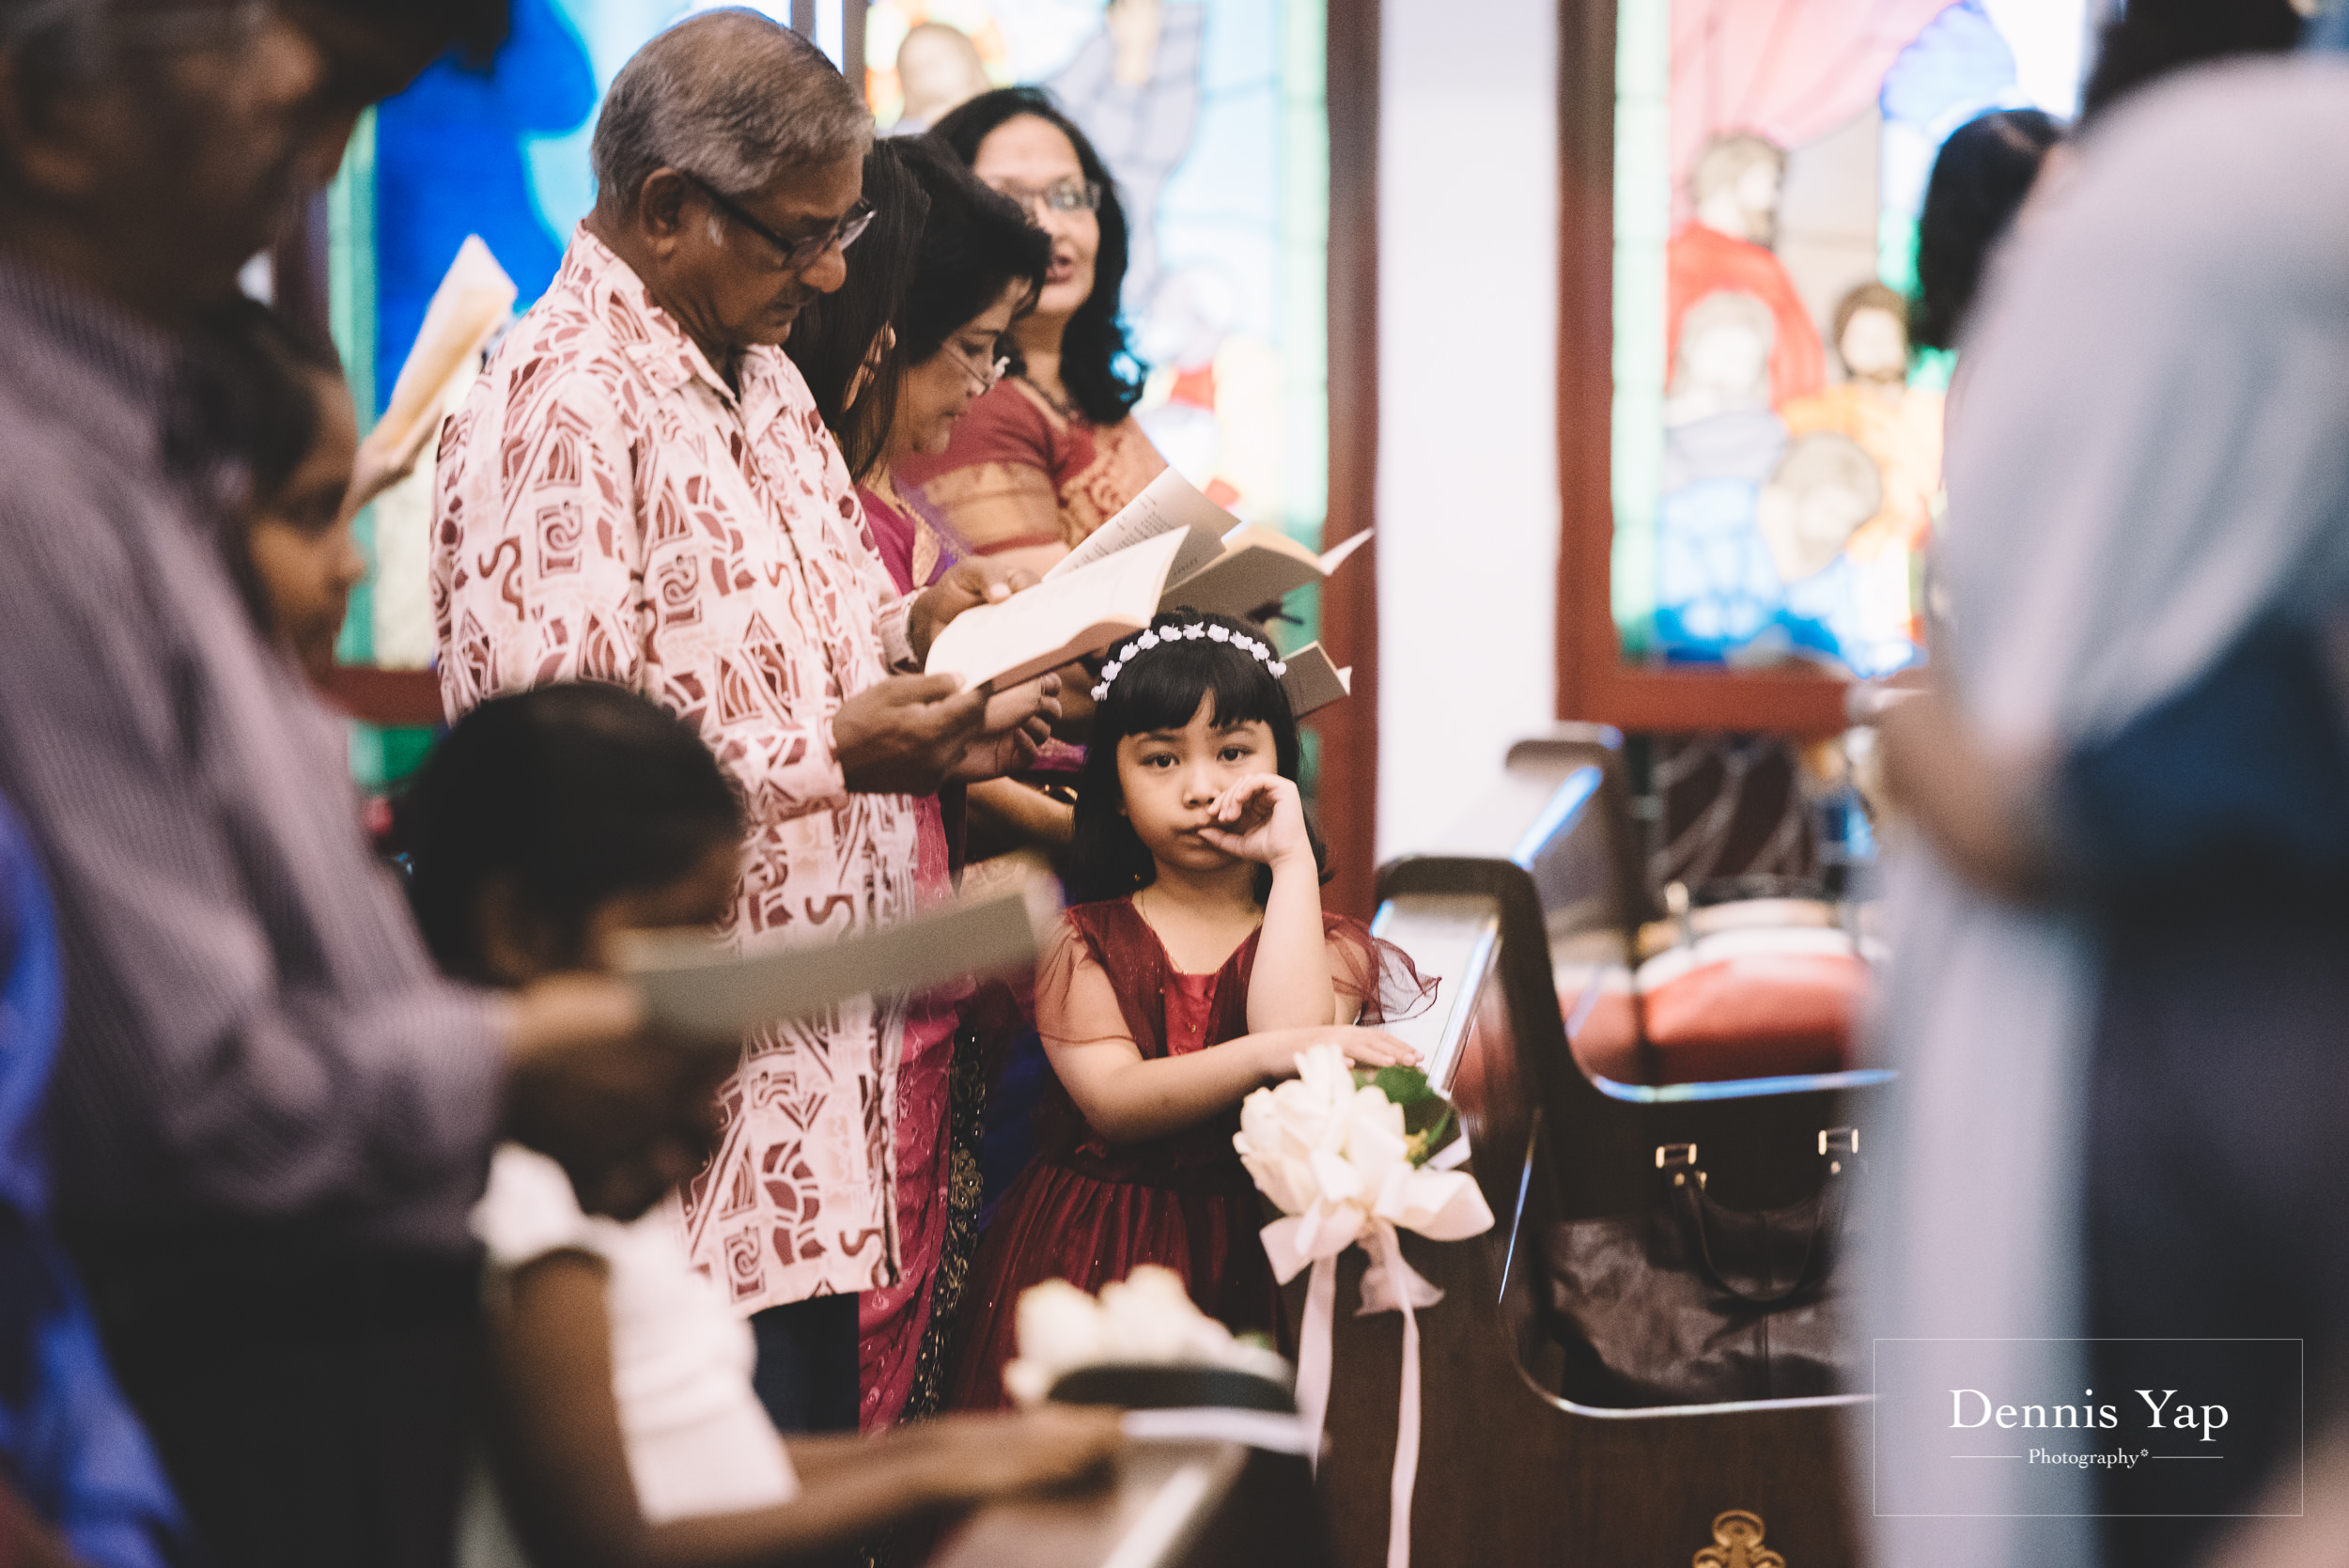 arun angela church wedding st peter bangsar dennis yap photography-14.jpg